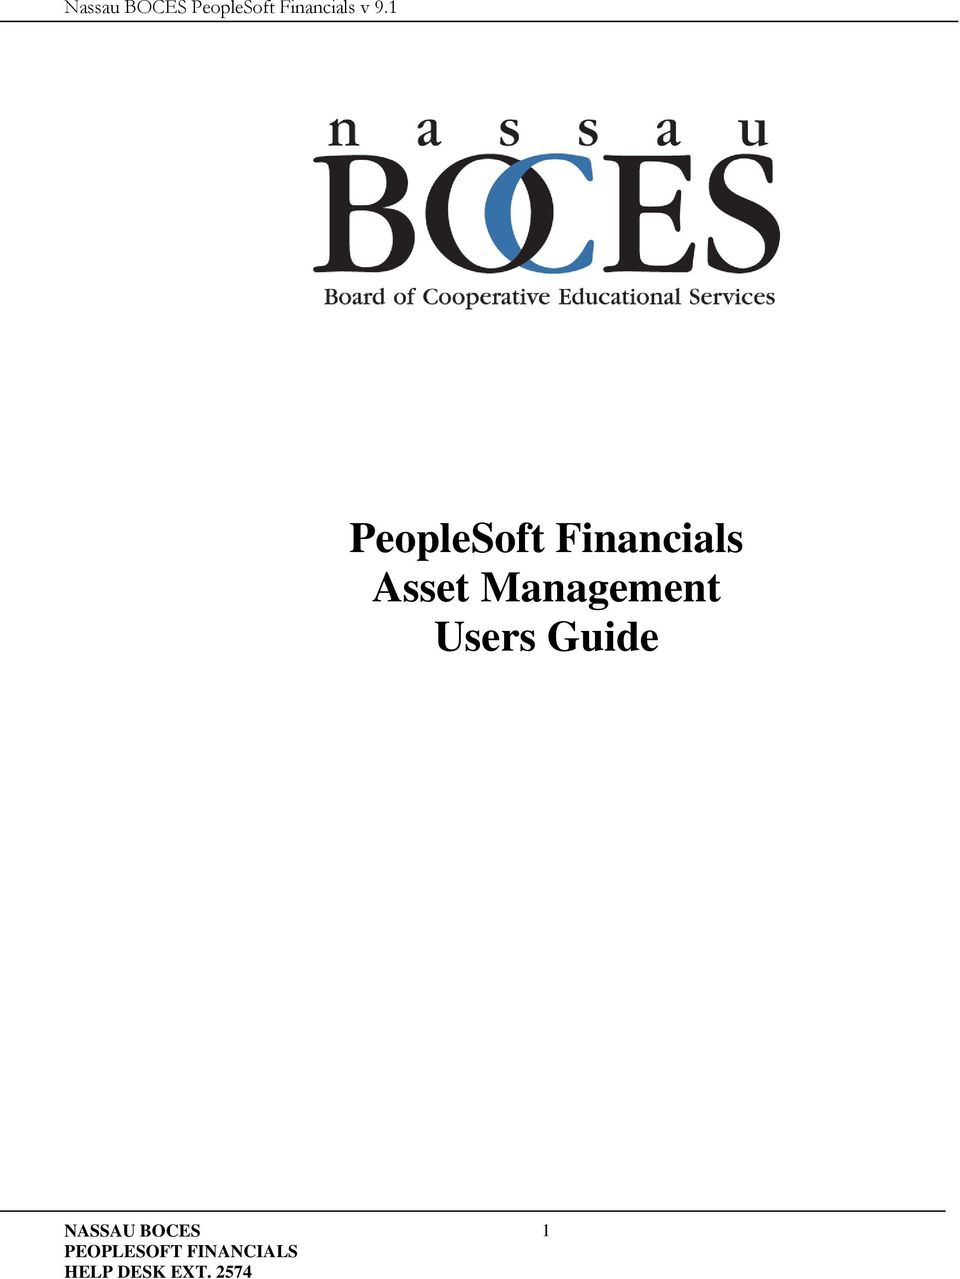 1 PeopleSoft Financials Asset Management Users Guide 1